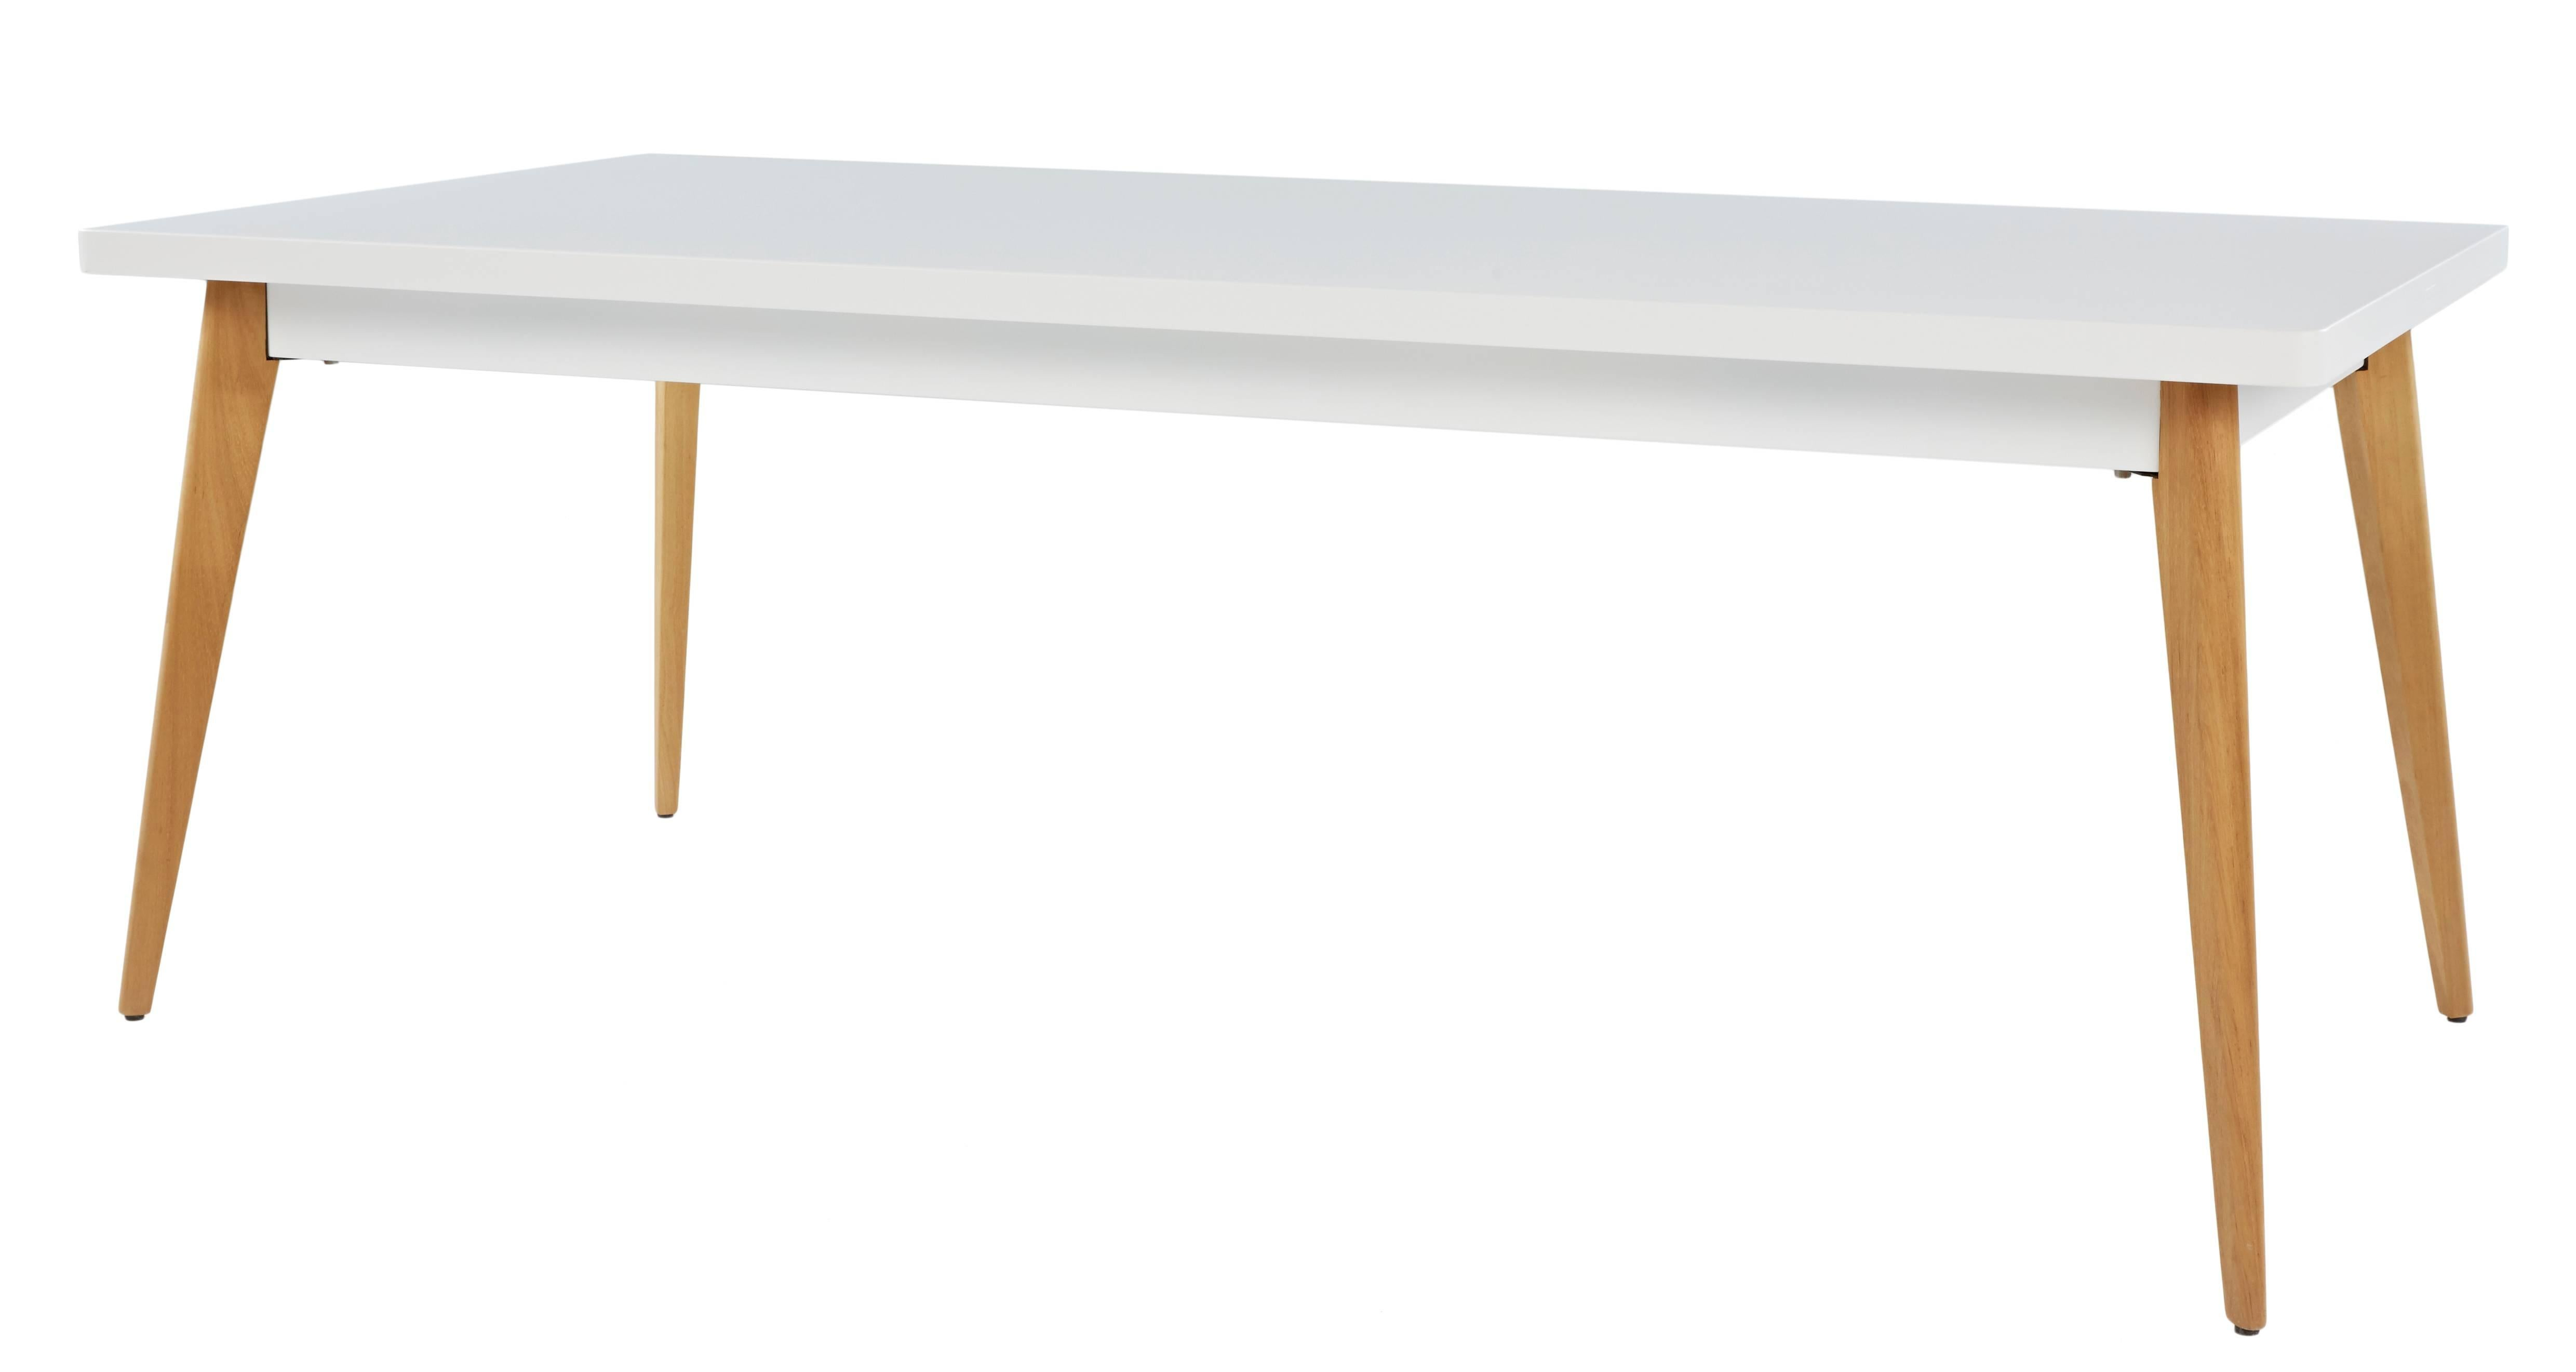 55 Large Dining Table In White With Wood Legs By Jean Pauchard And Tolix For At 1stdibs